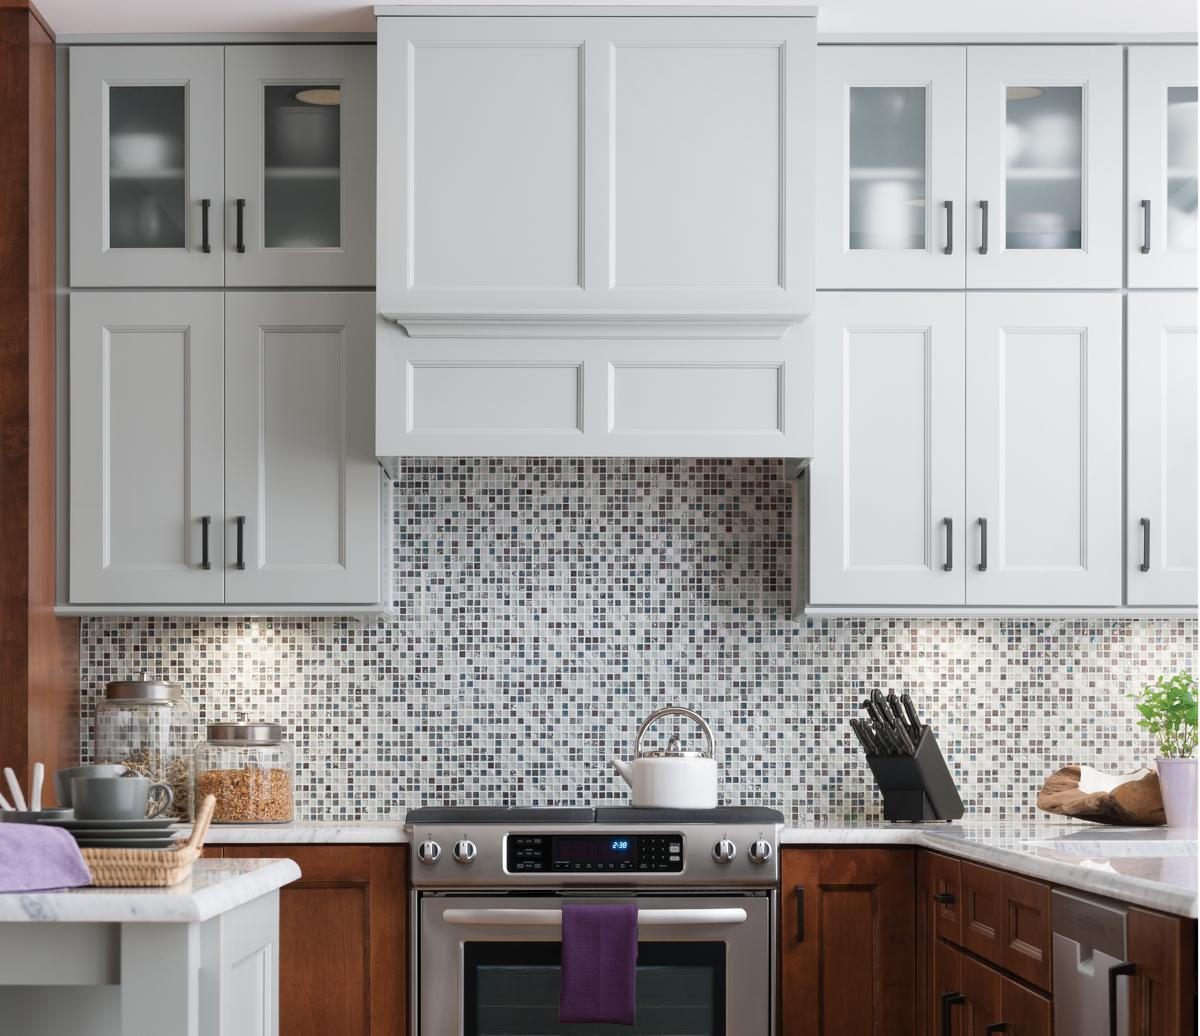 Medallion at Menards Cabinets | Cabinetry Remodeling Project ...